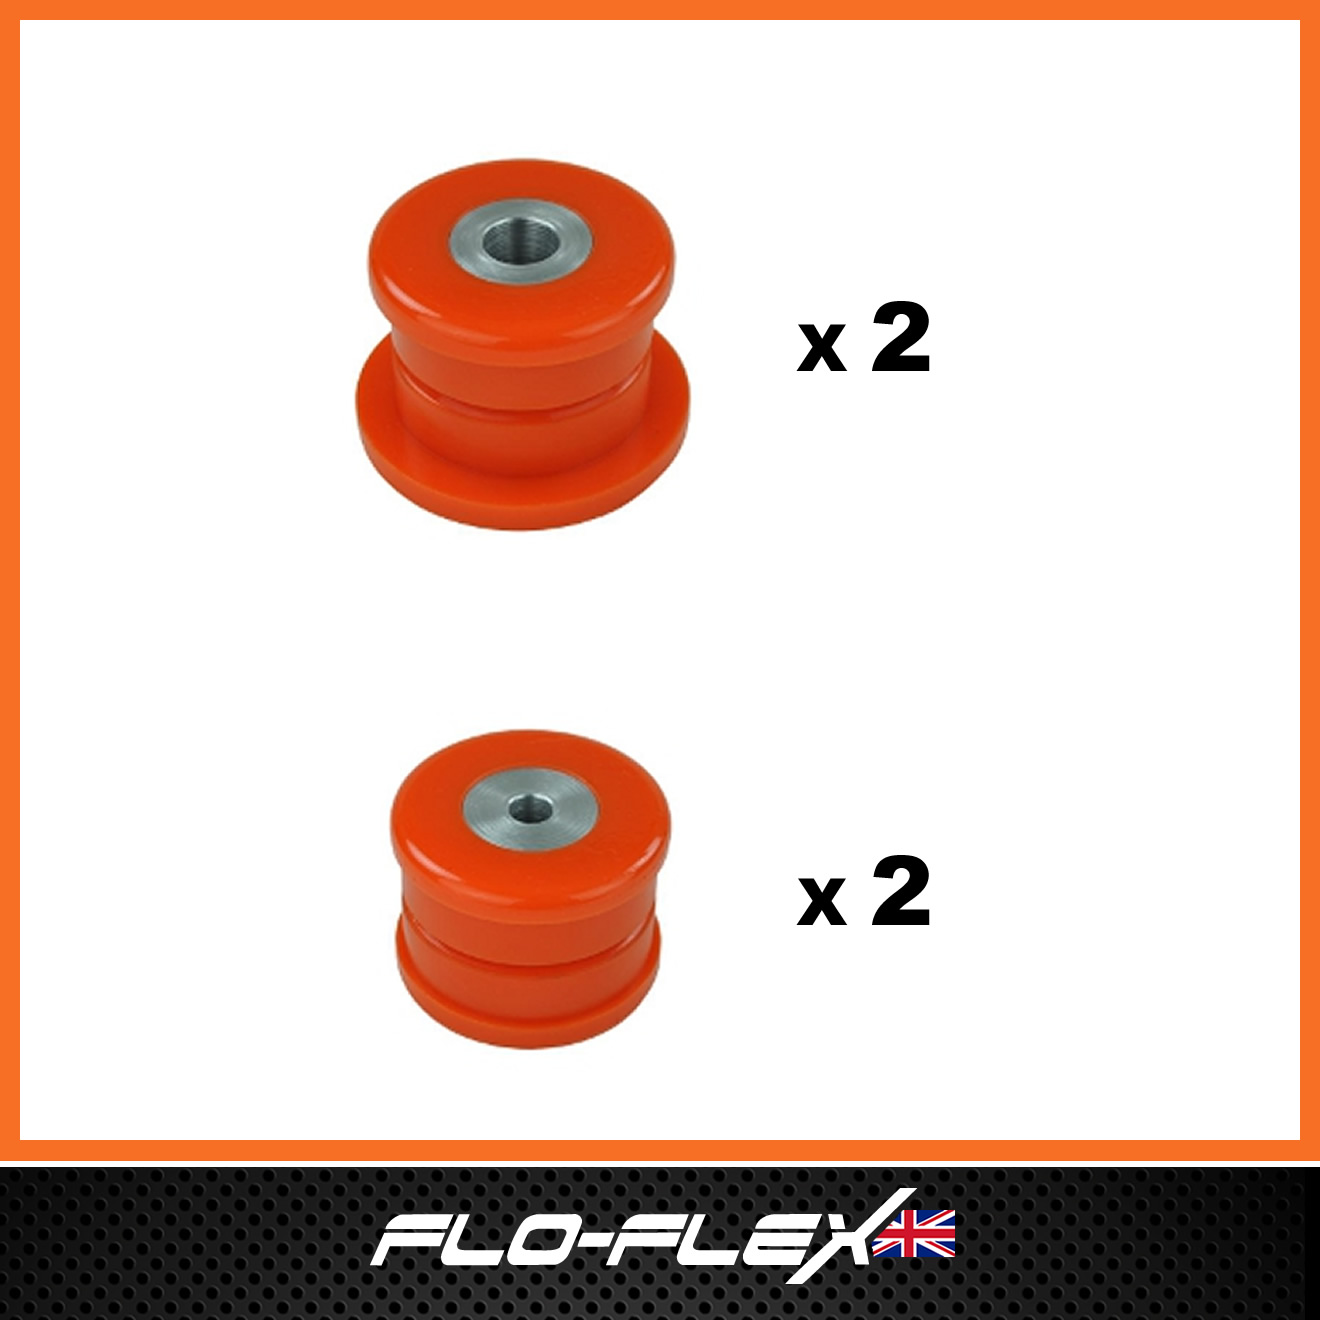 Land Rover Discovery 1 Shock Absorber Bushes in Poly Polyurethane Flo-Flex